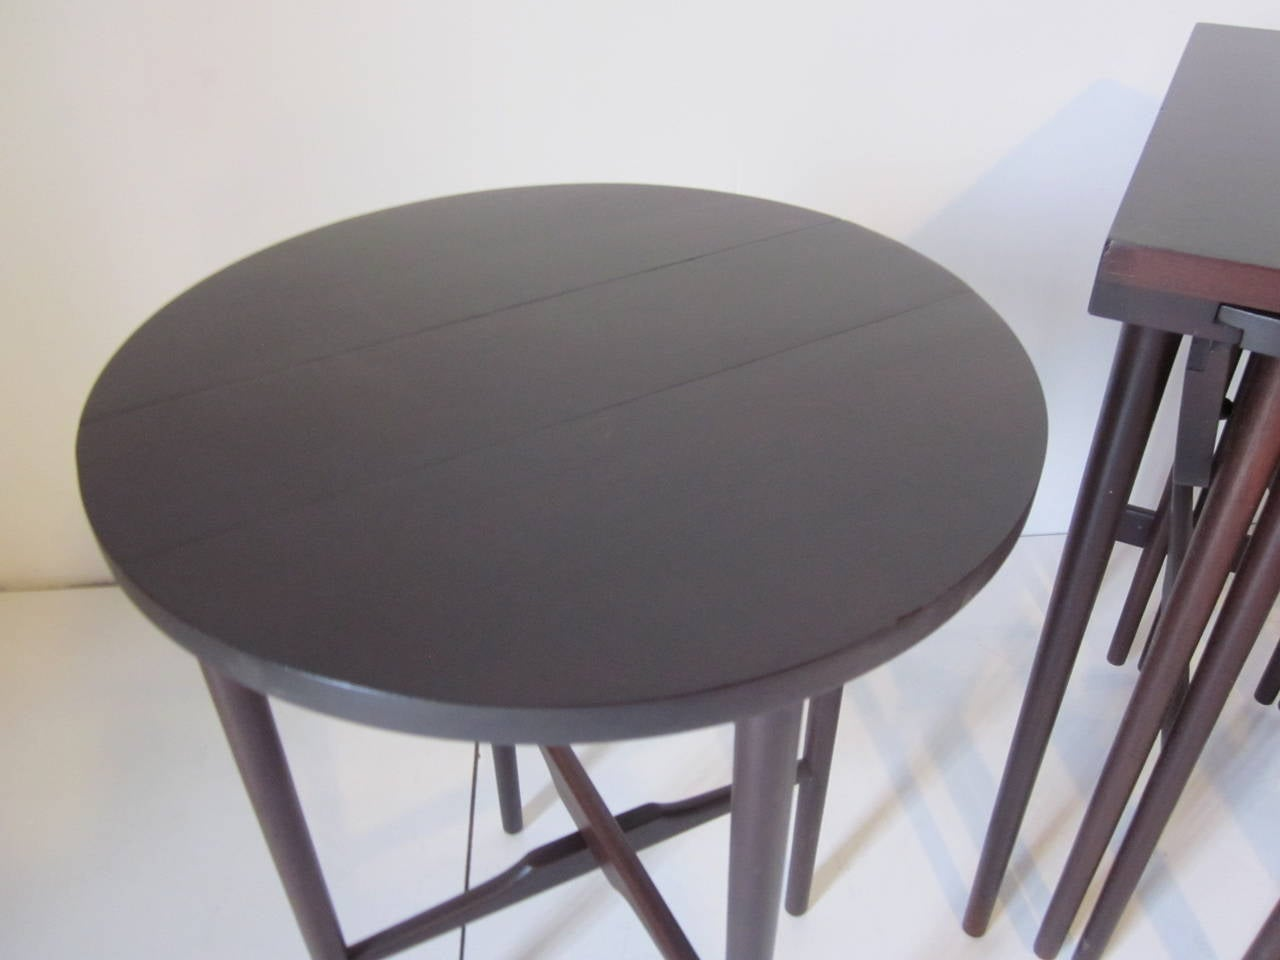 Mid-Century Modern Bertha Schaefer Nesting Tables by Singer and Sons For Sale